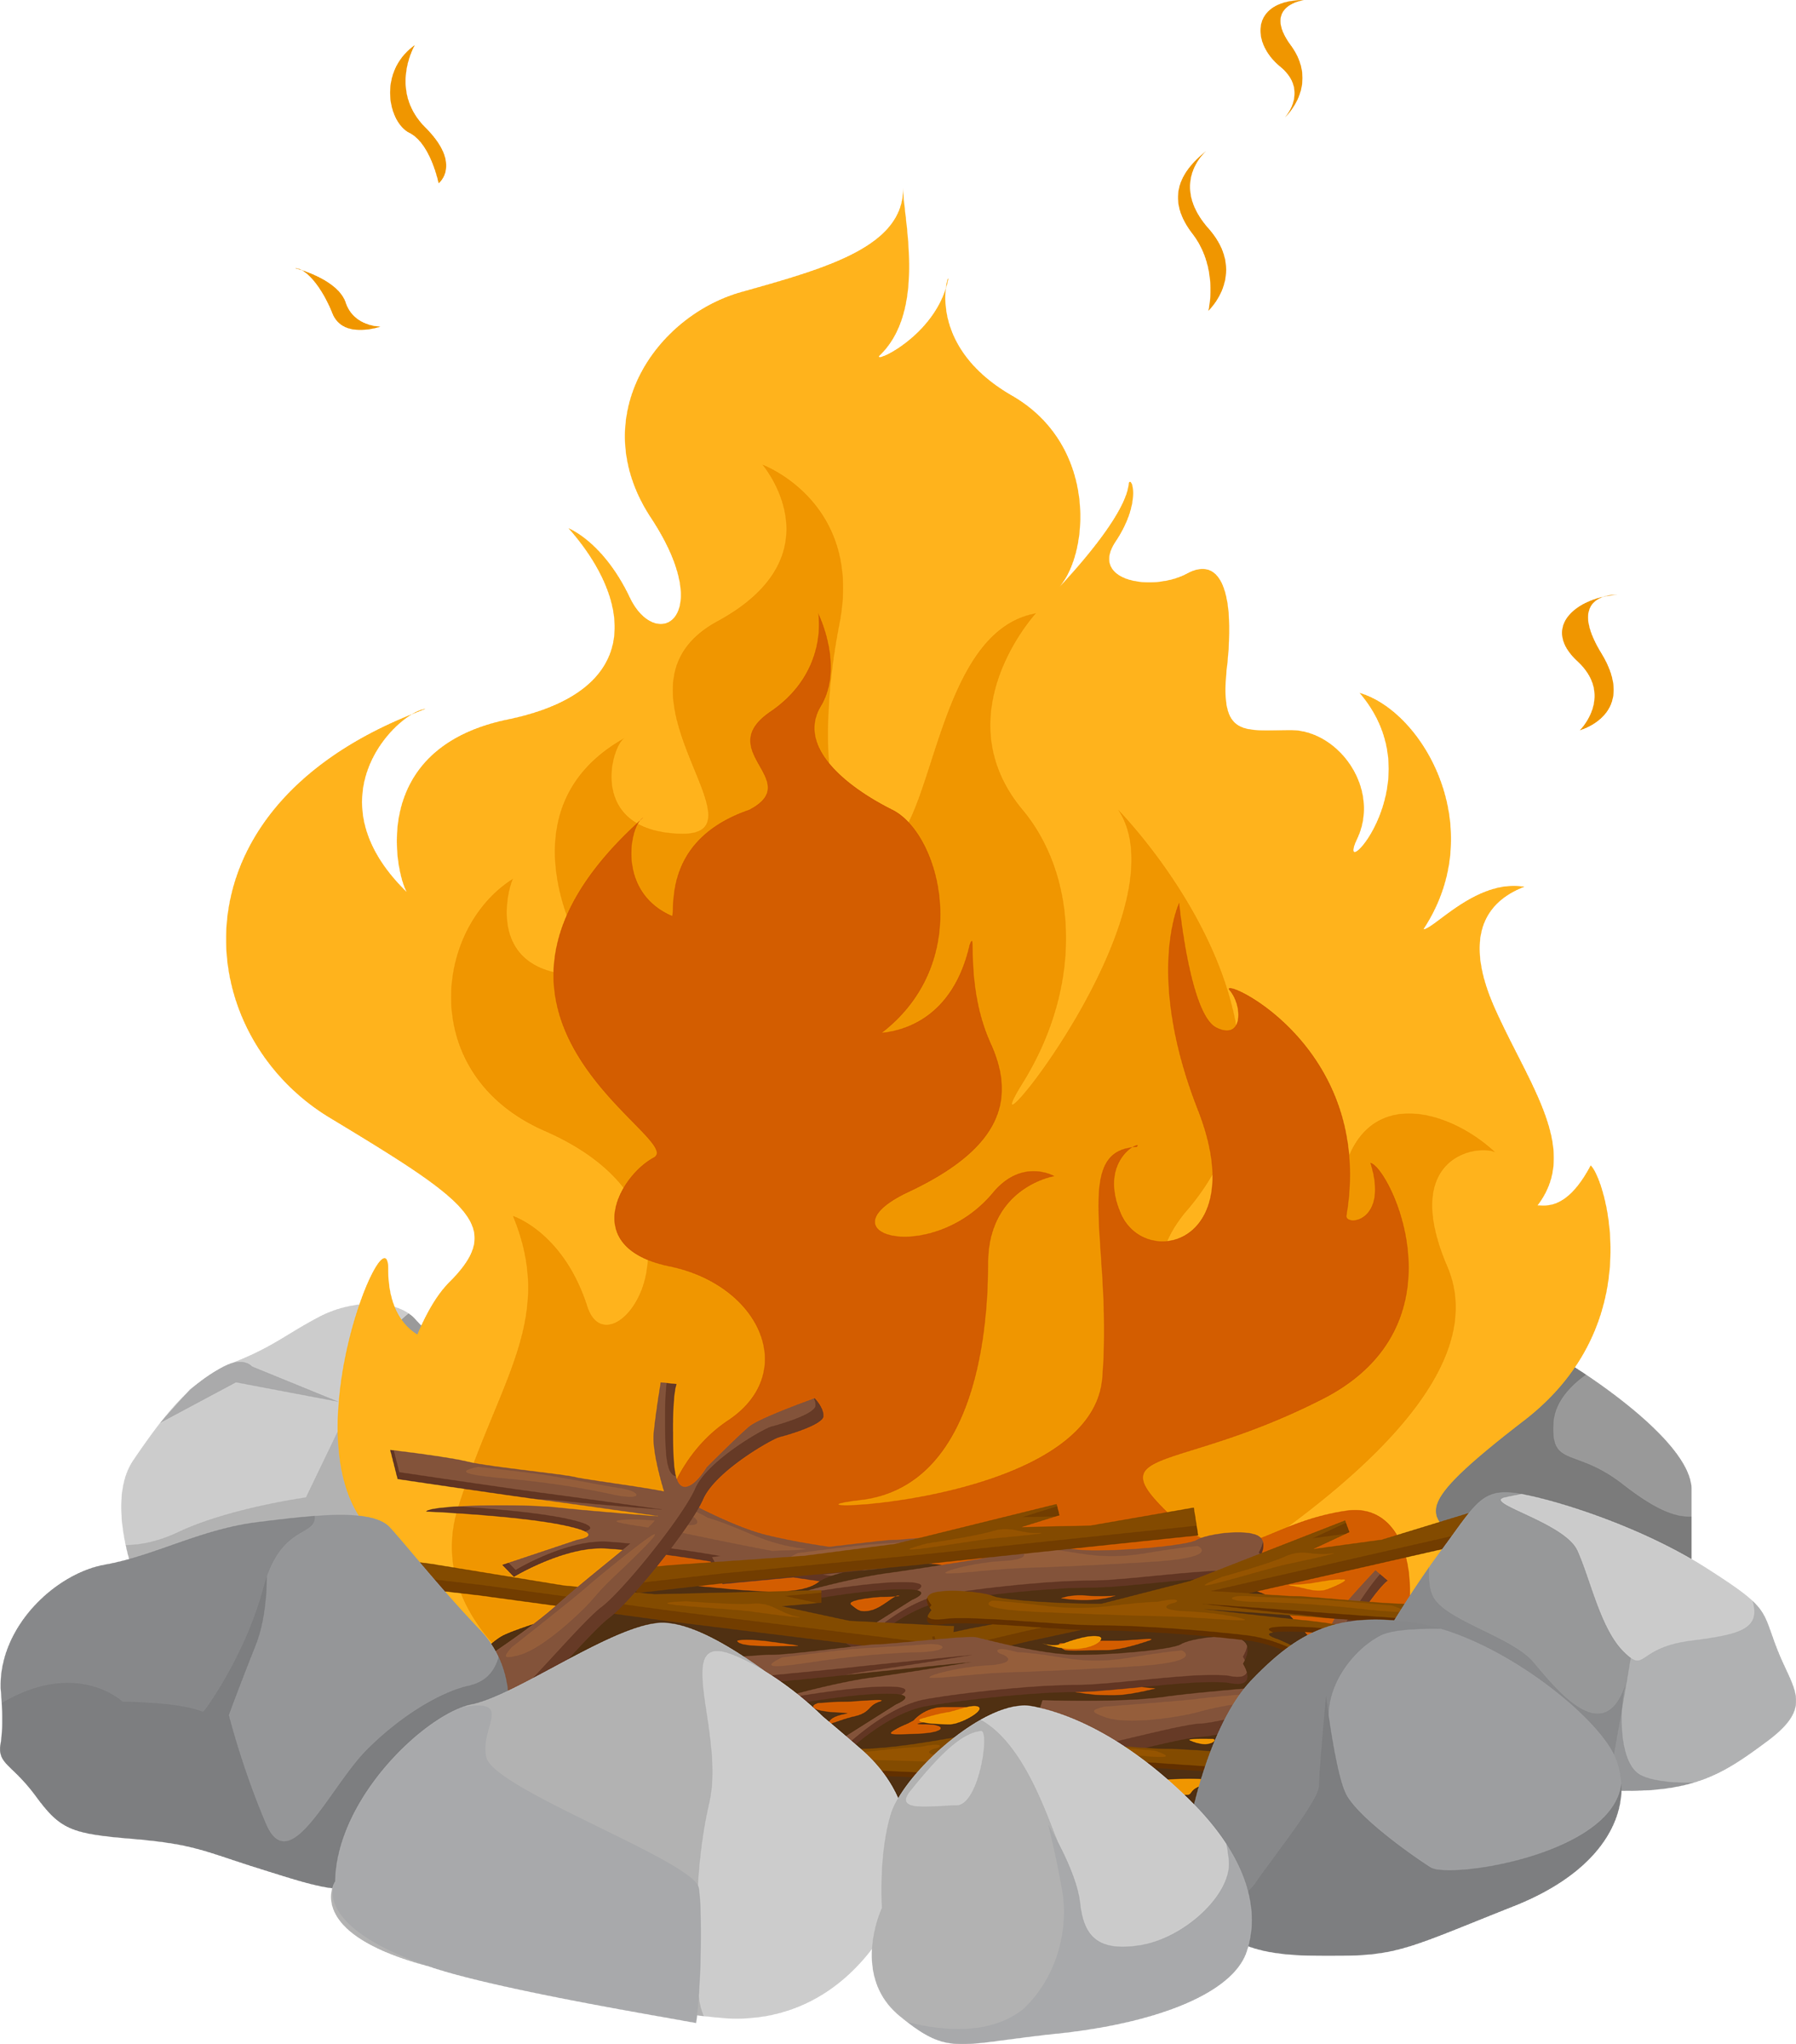 Png images transparent free. Campfire clipart clip freeuse download